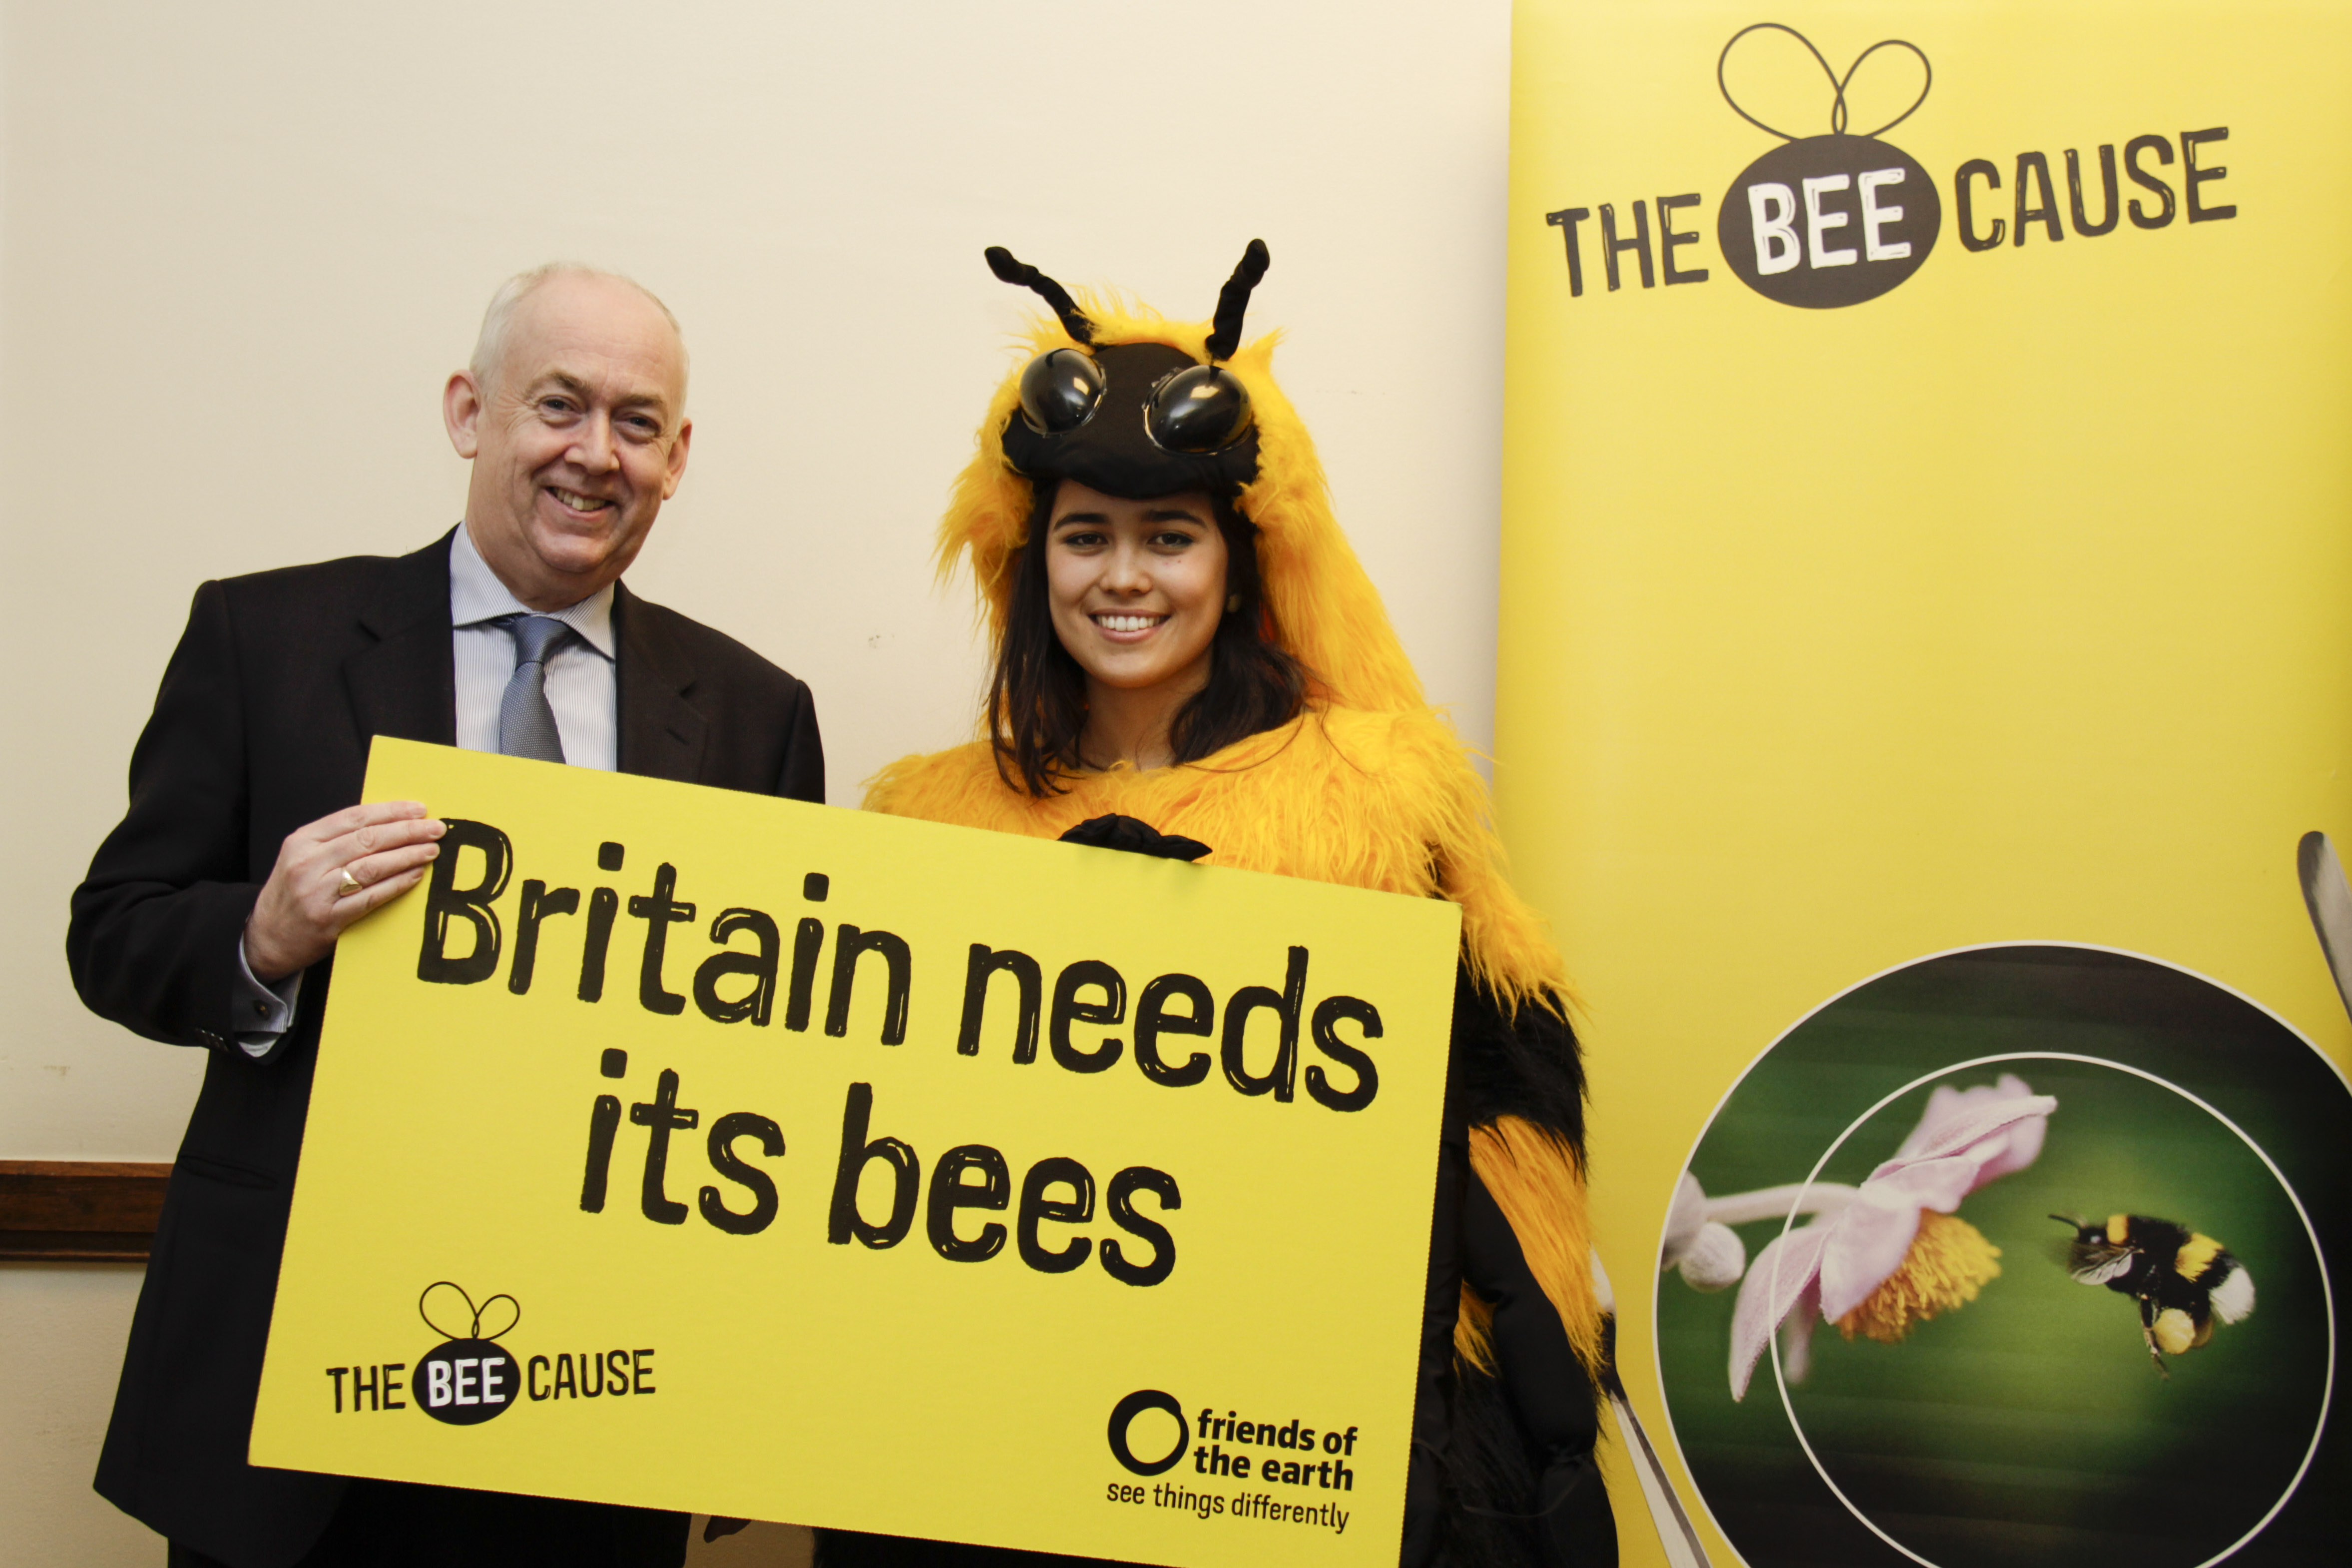 Friends of the Earth - The Bee Cause